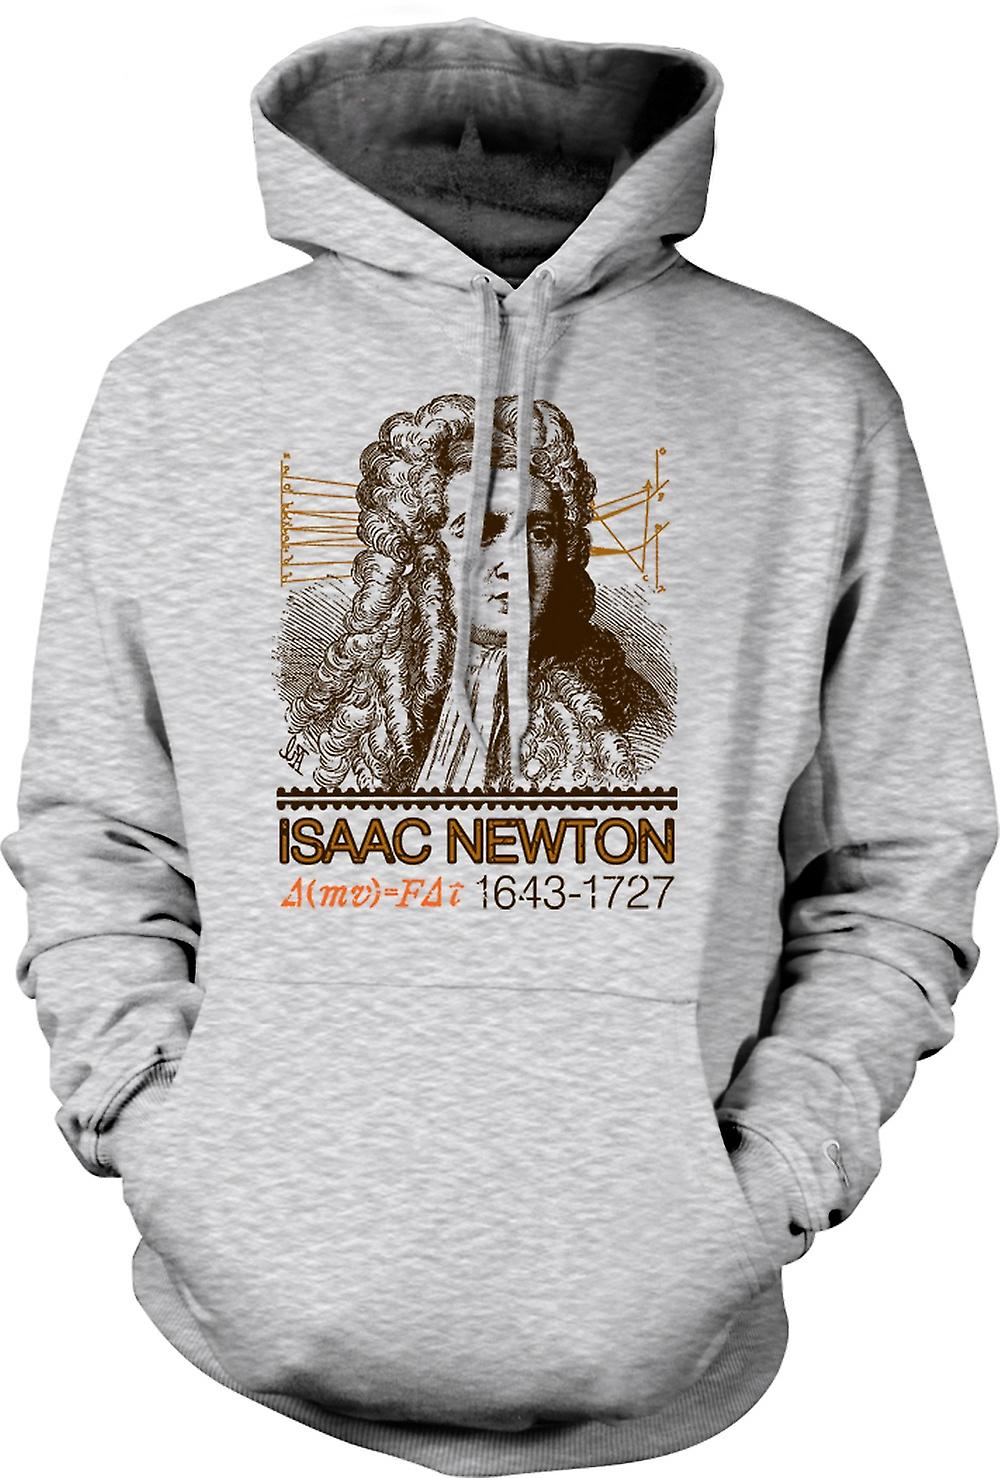 Mens Hoodie - Isaac Newton scientifique 1643 - 1727 - Icon